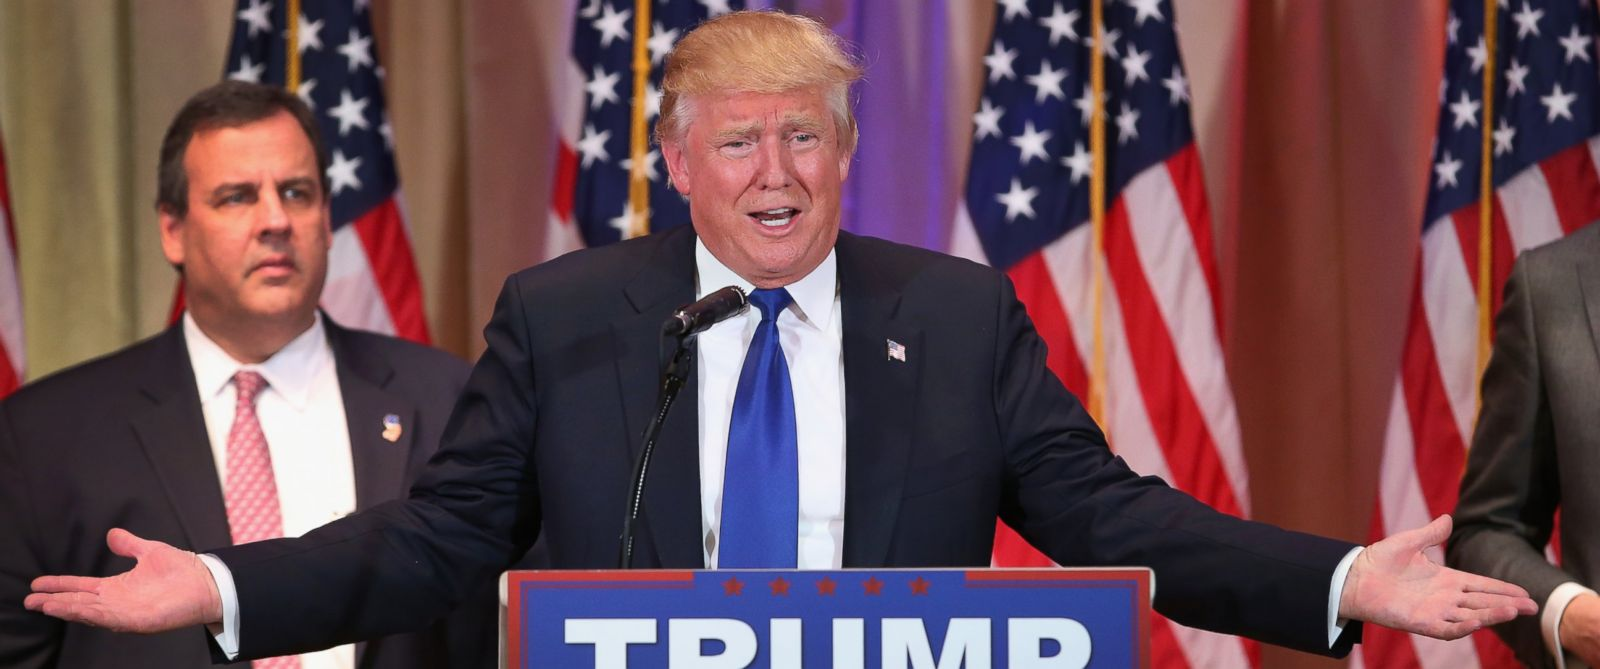 PHOTO: Donald Trump speaks to the media, March 1, 2016, in Palm Beach, Florida.